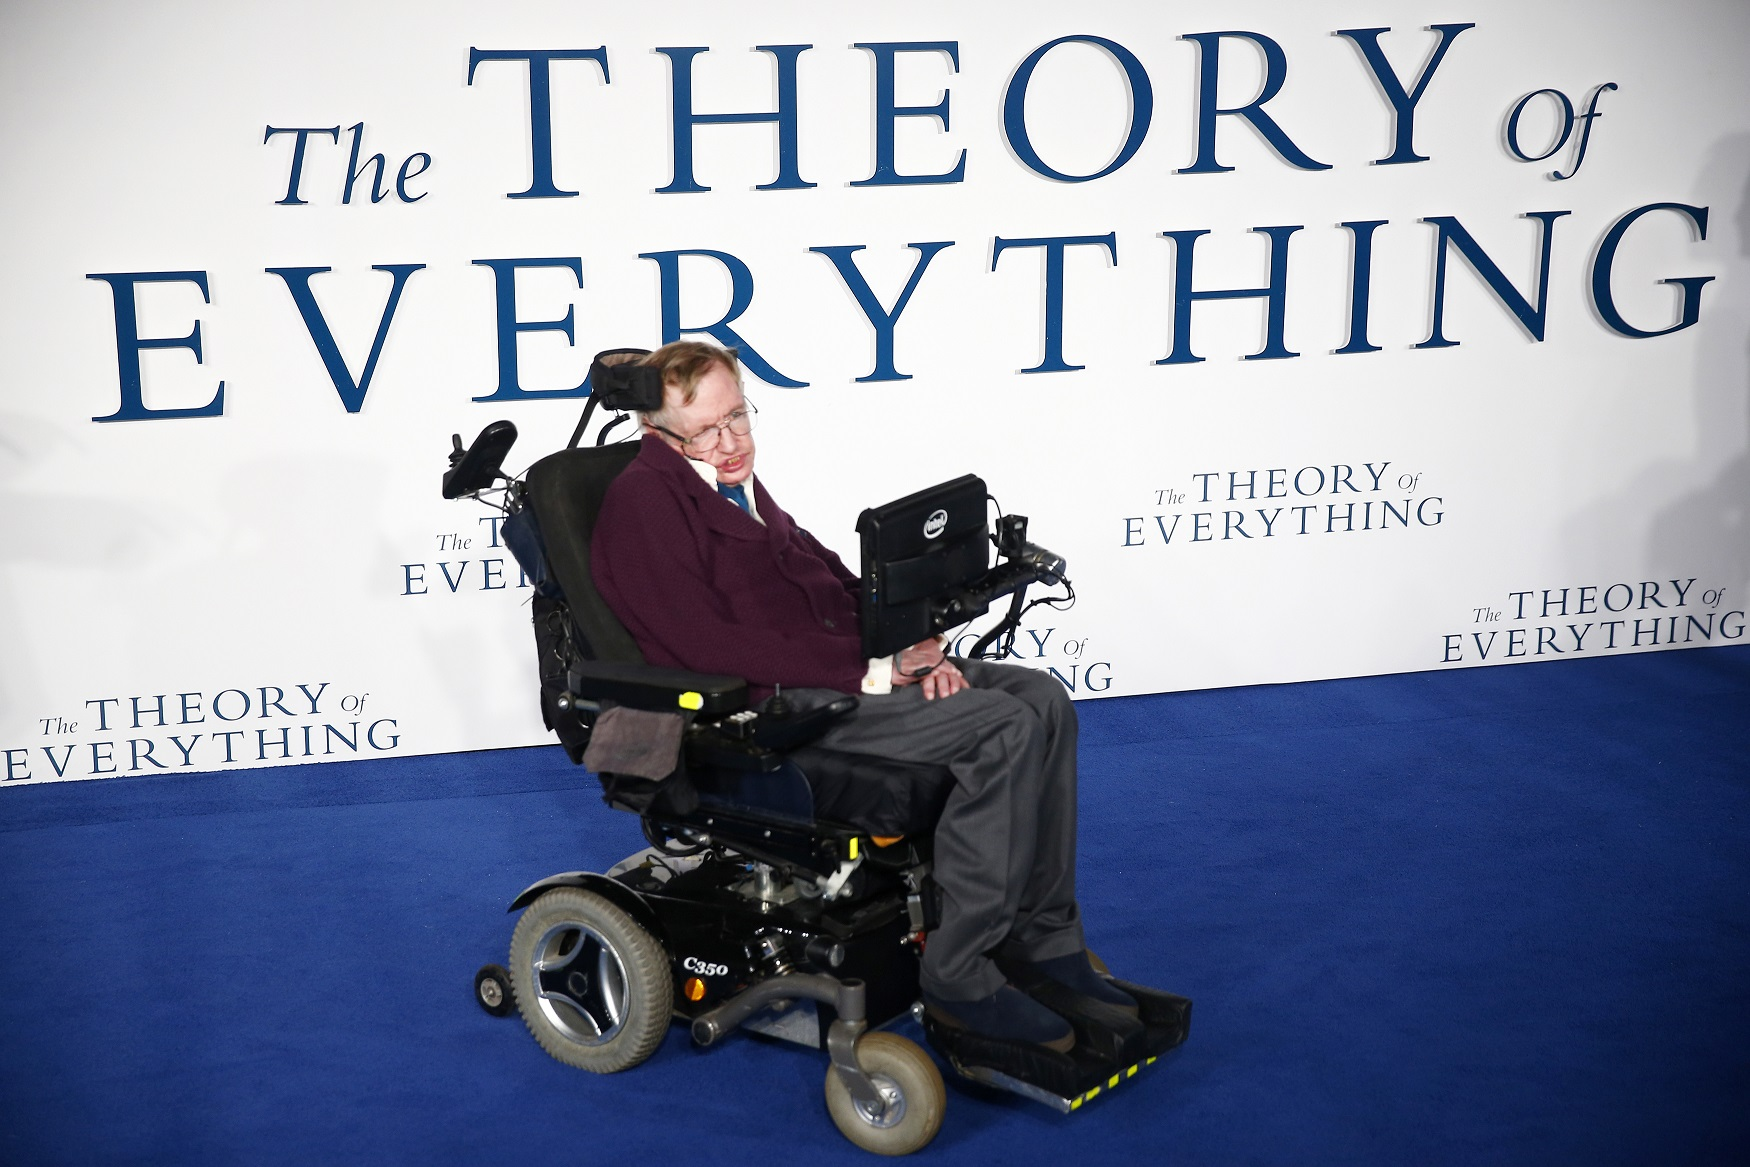 """Stephen Hawking arrives at the UK premiere of the film """"The Theory of Everything"""" which is based around his life, at a cinema in central London"""